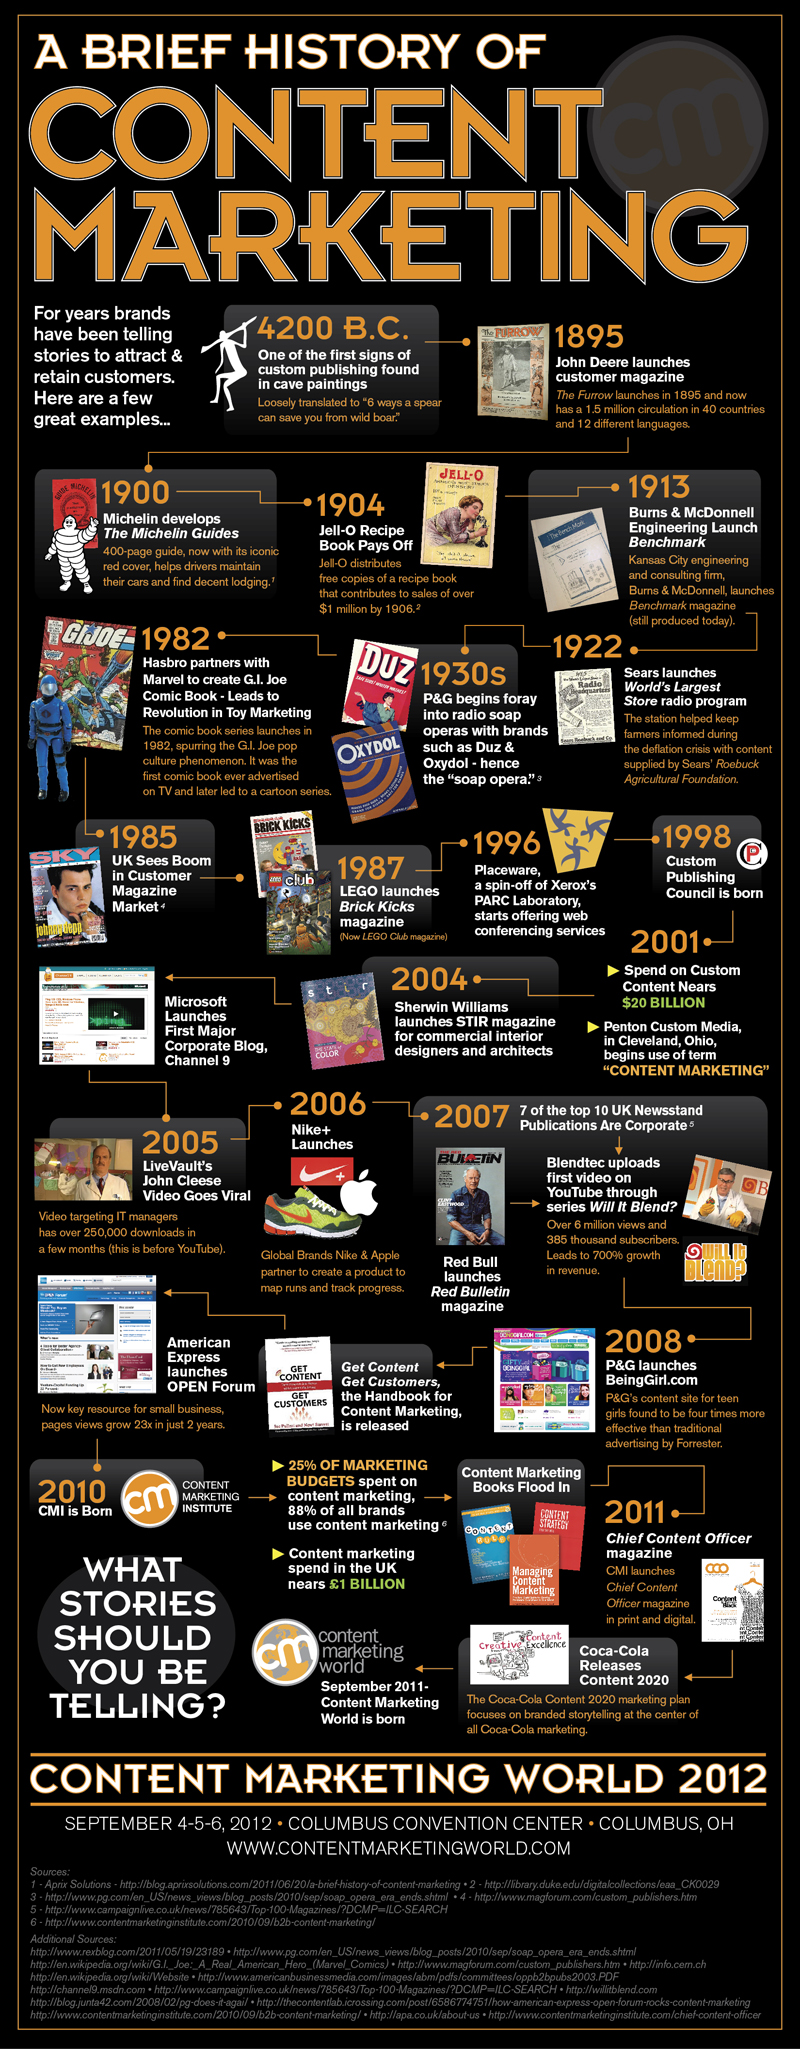 History of Content Marketing (Click to enlarge)